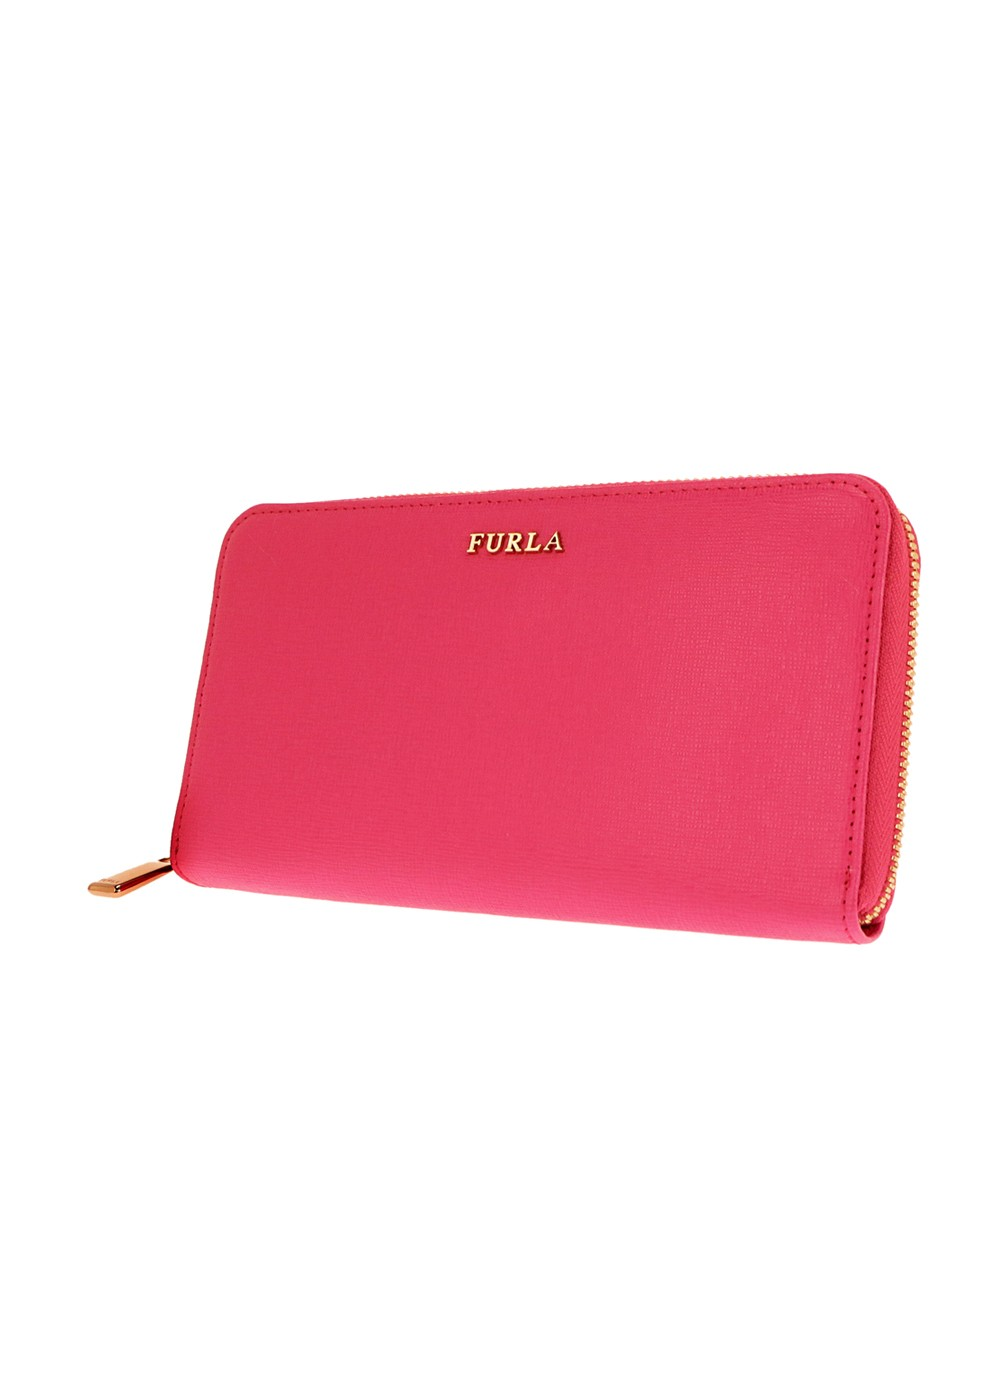 【最大50%OFF】BABYLON XL ZIP AROUND WALLETE|PINKY|レディース財布|FURLA(U)